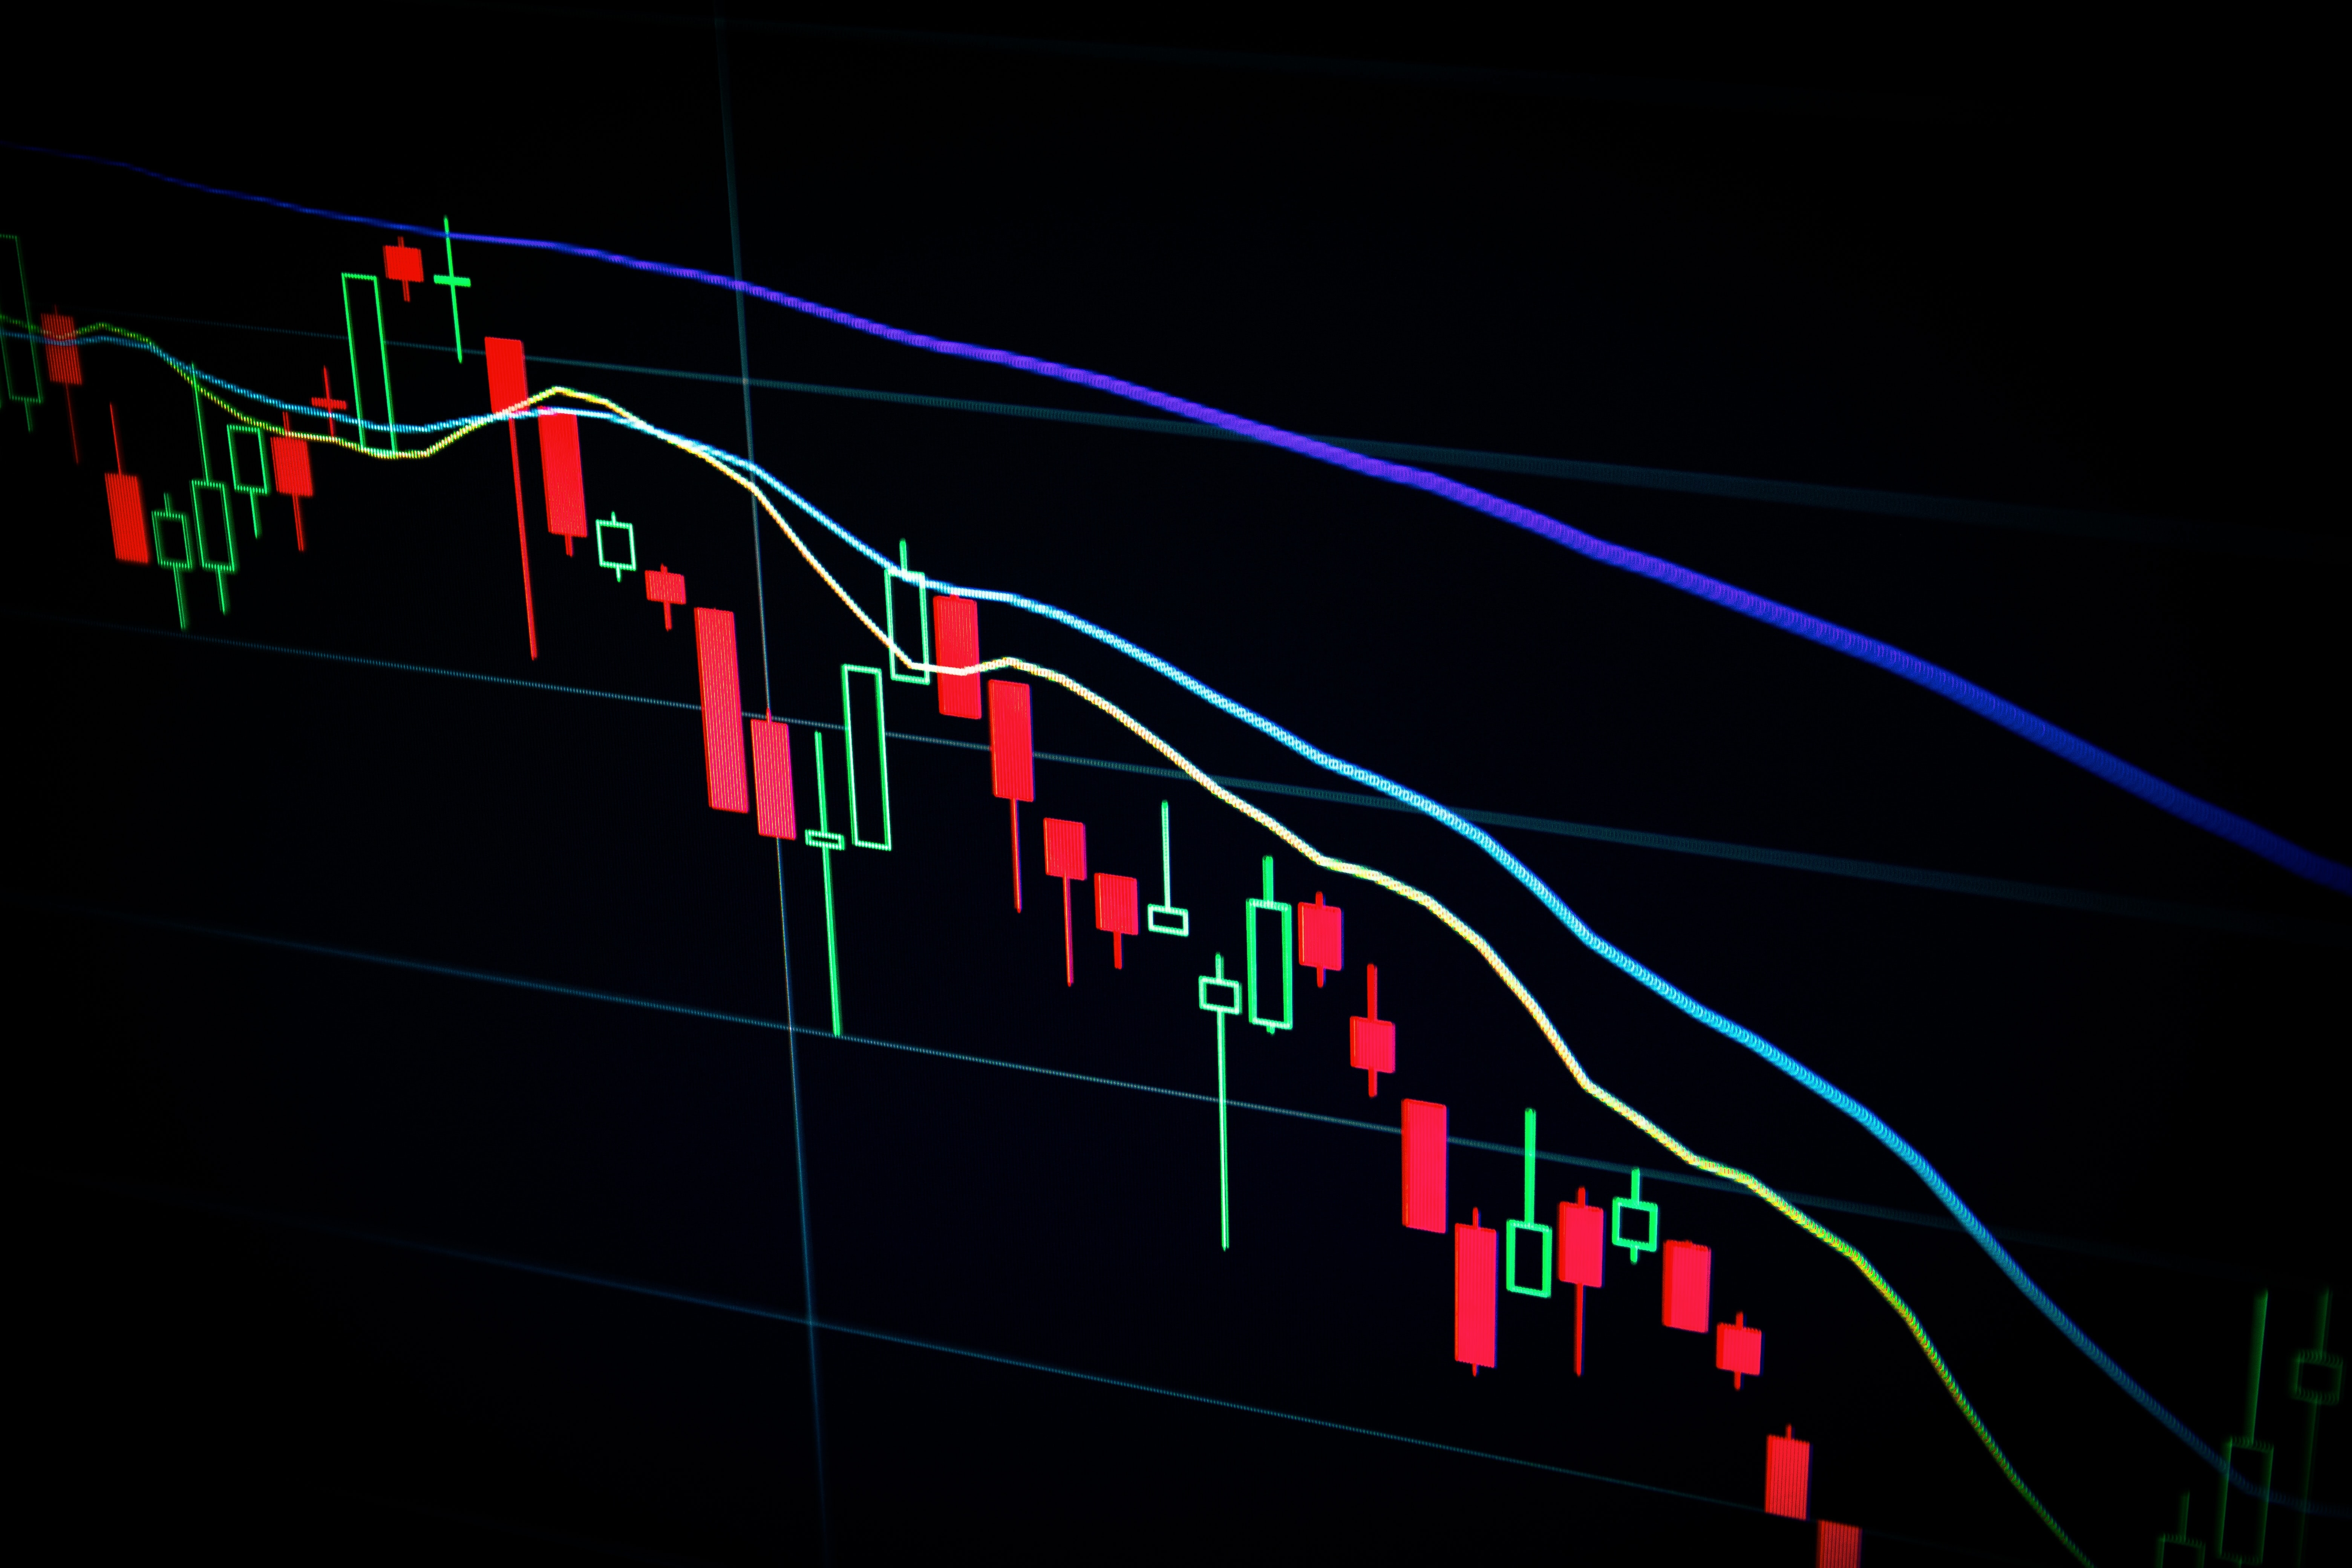 Market Sentiment Hits Low As Binance Has Largest Bitcoin Inflow Ever